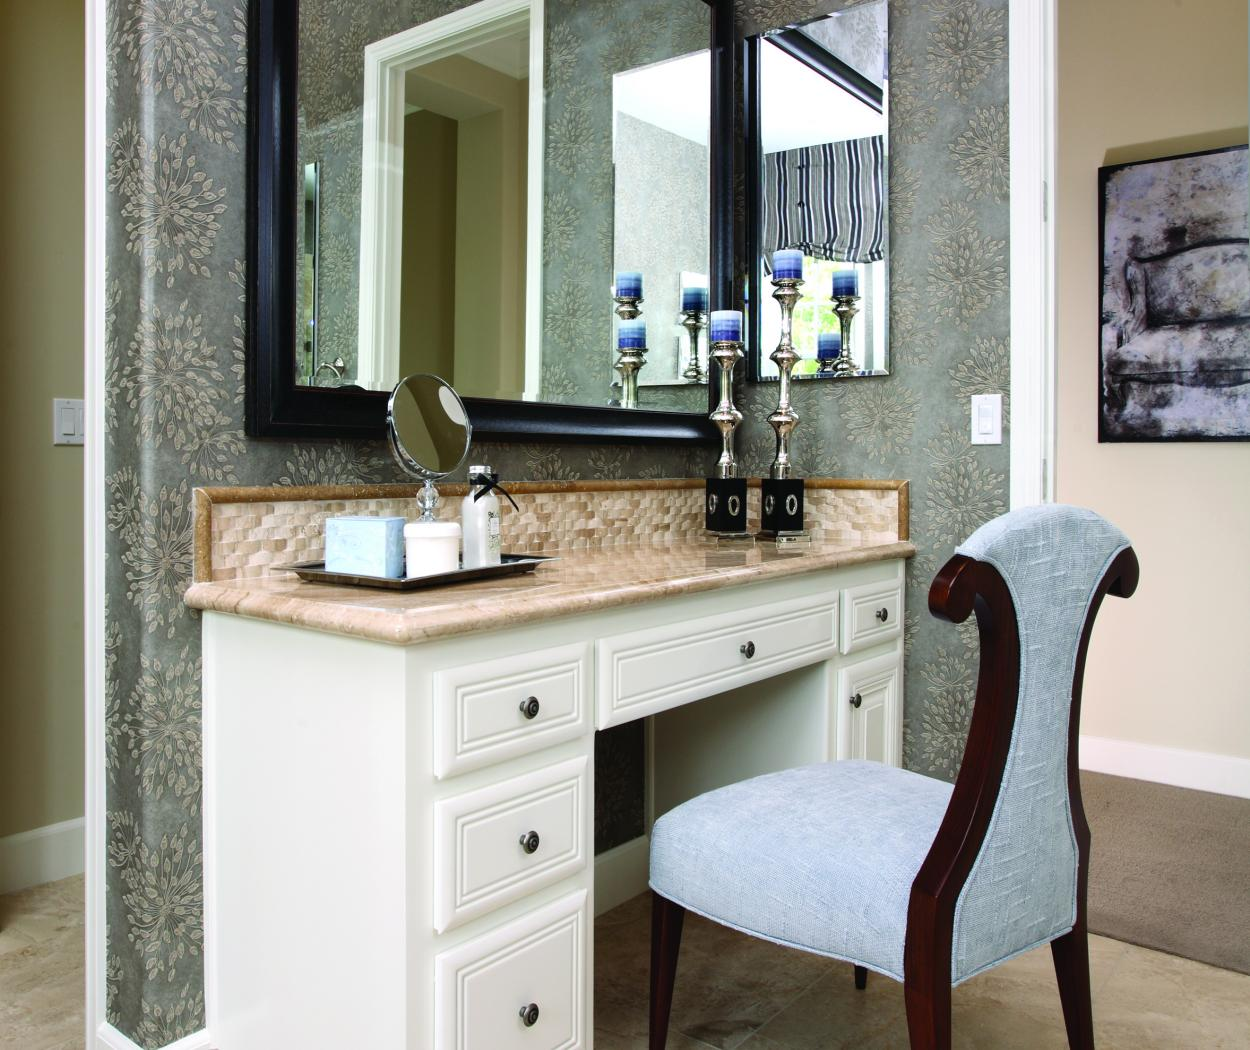 Traditional Powder Room Built-In with a Beautiful Tan Mixed Granite Countertop and Decorative Knobs